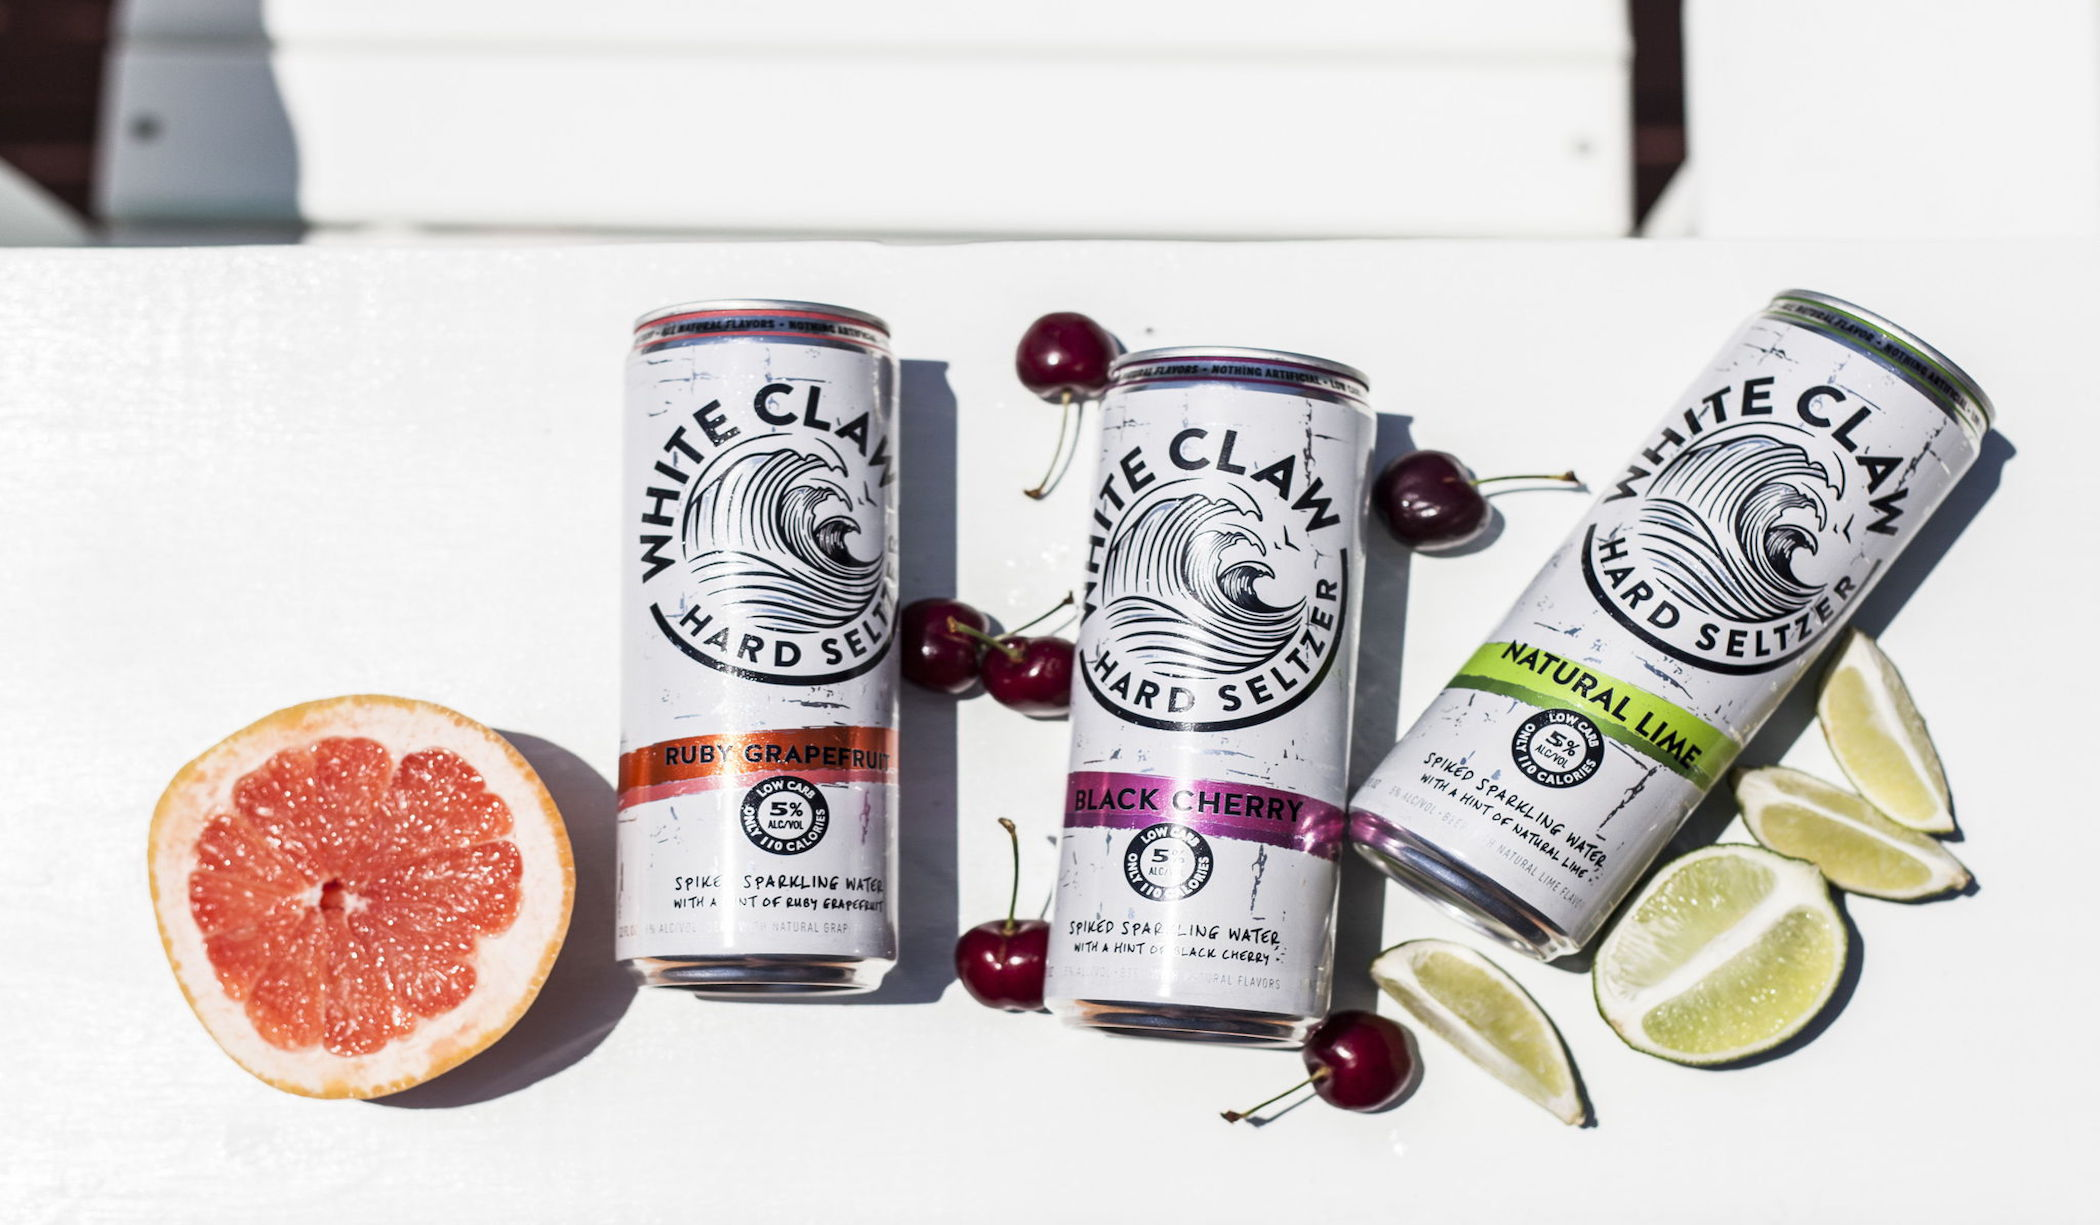 Marketing in the Age of White Claw and Plant-Based Meat